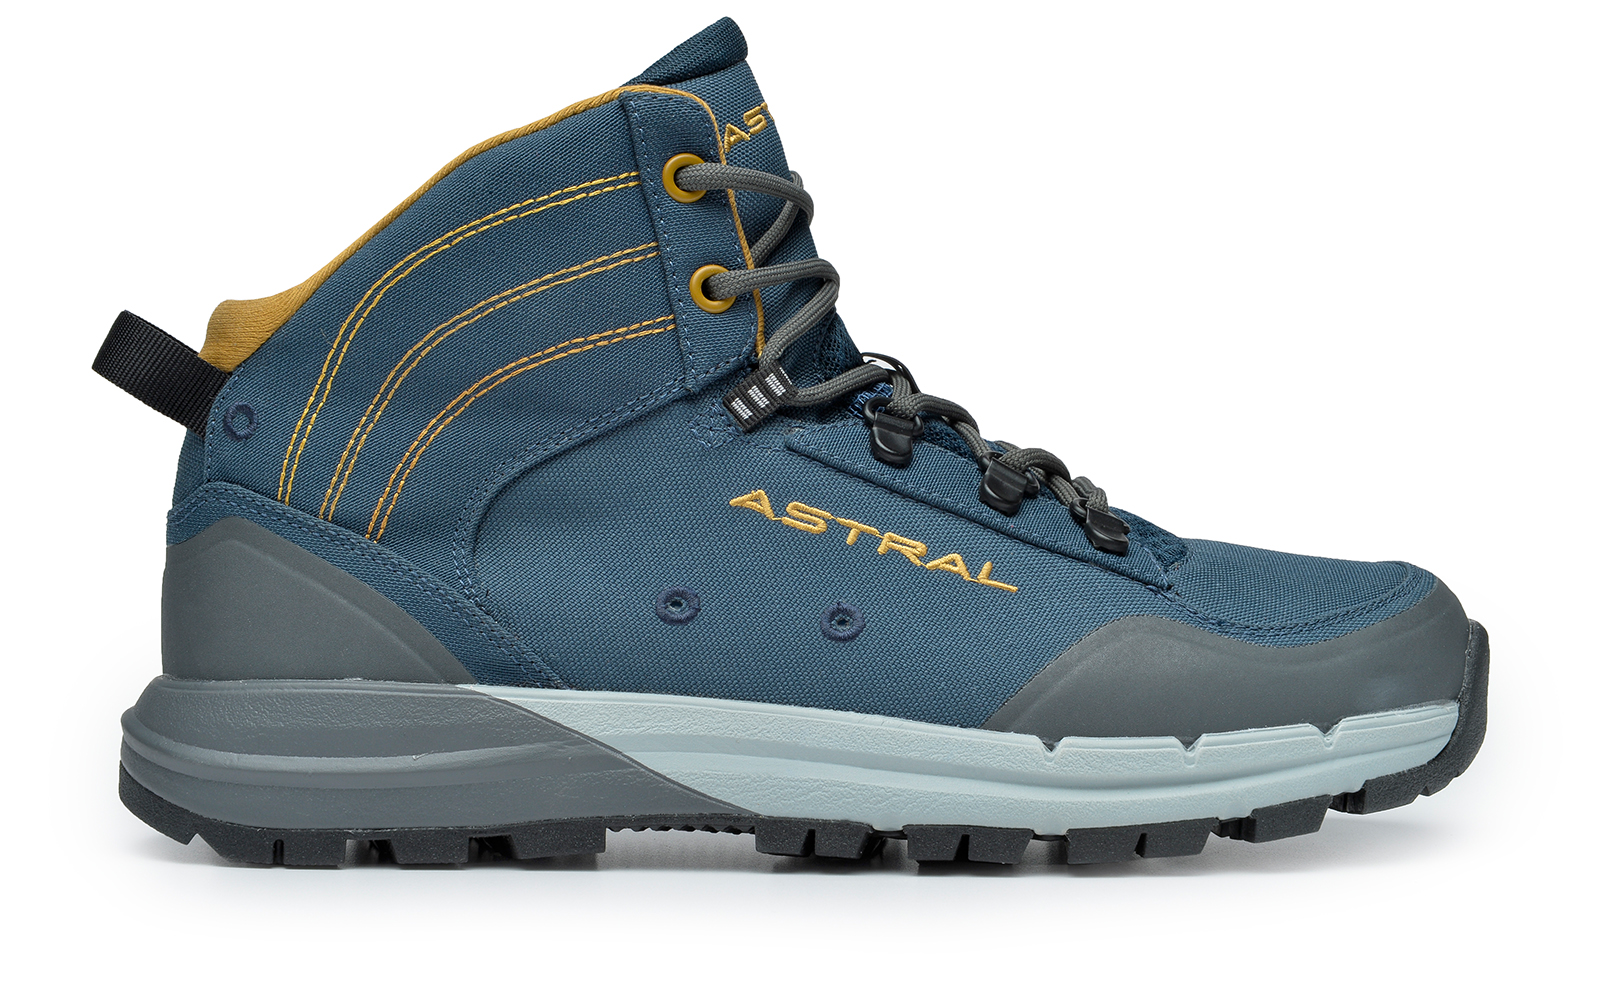 a8c9575393d6 TR1 Merge Men s Water Resistant Hiking Shoes